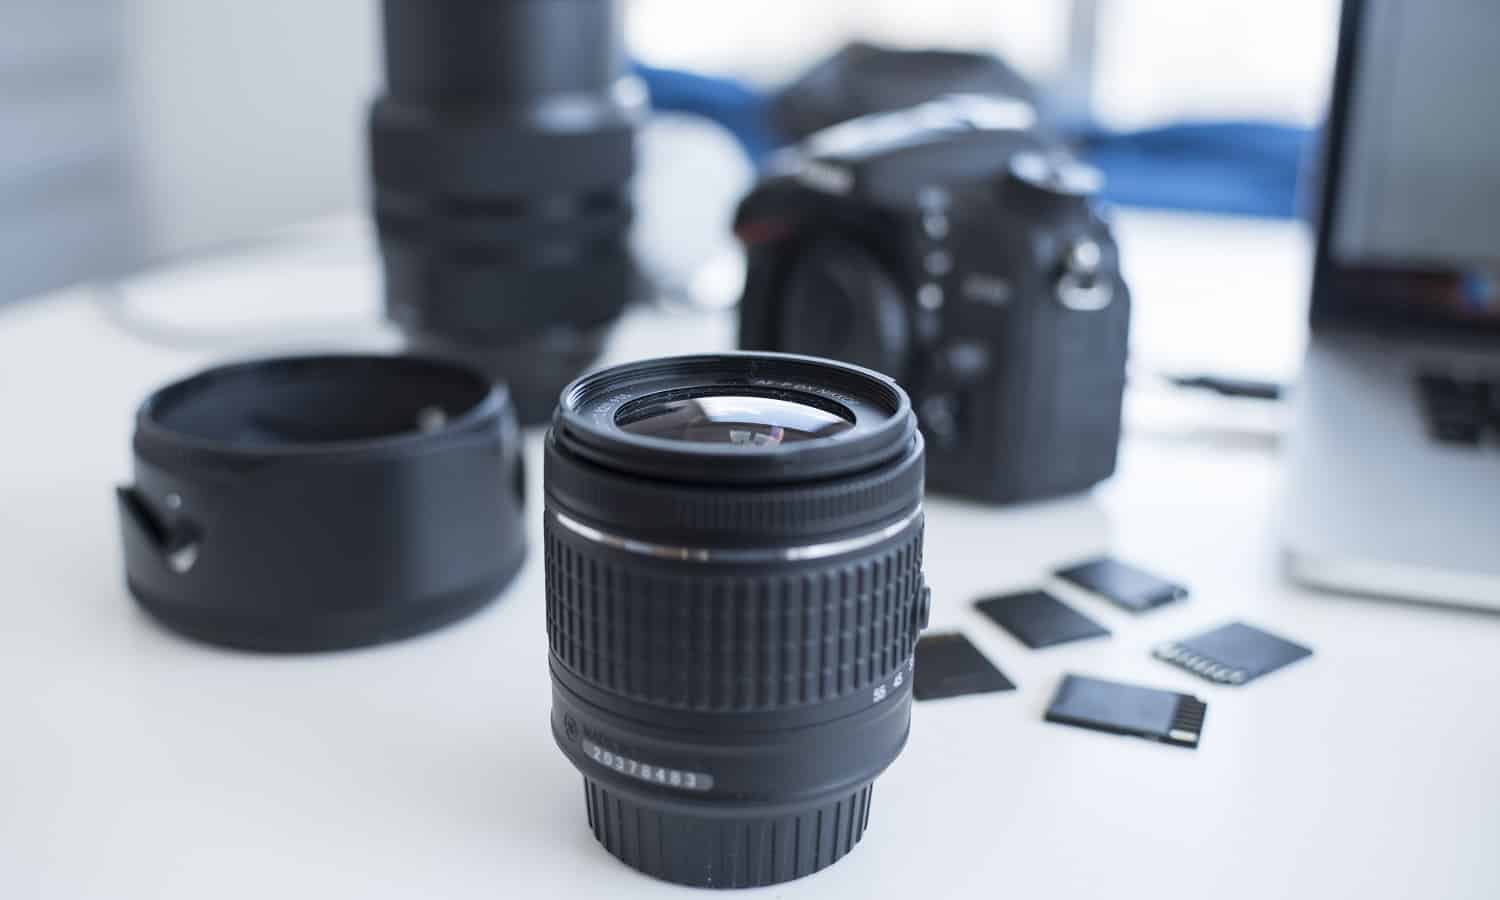 5 best lens for street photography right now 2